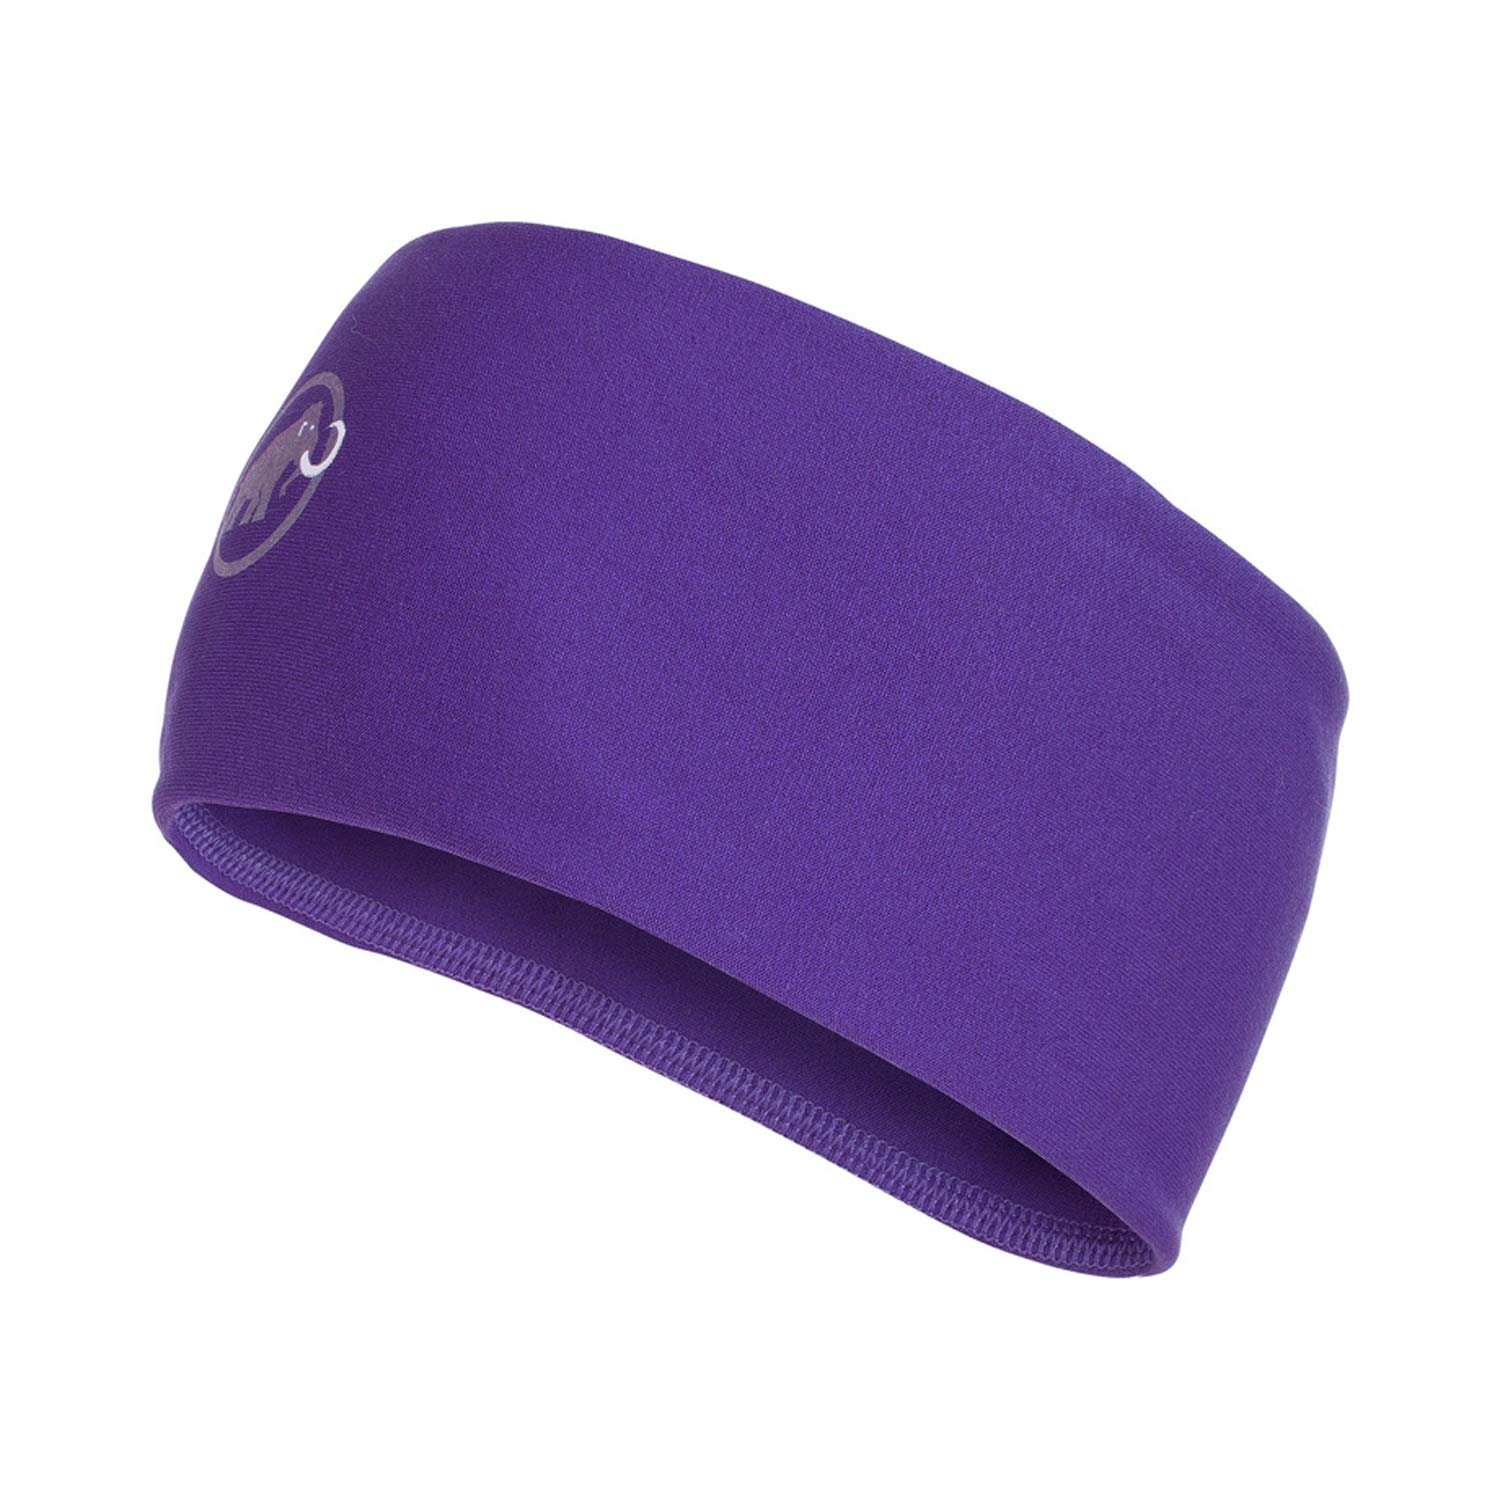 Mammut (Headbands), Aenergy Headband (Headbands), Mammut color:ultramarine;Größe:one size 286d5b